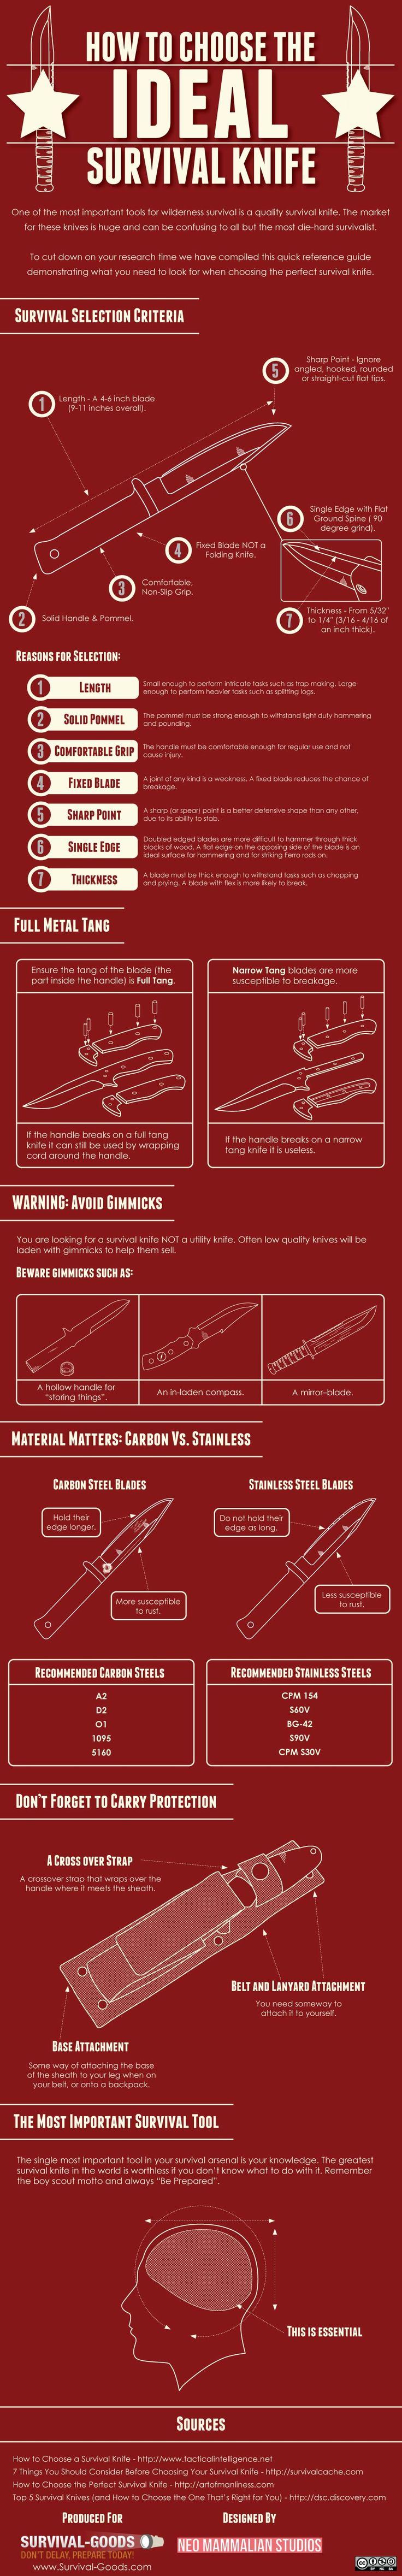 This is supposed to be a guide to how to choose the ideal survival knife - I don't agree with all of it but if you don't know the subject at least this won't get you in trouble.